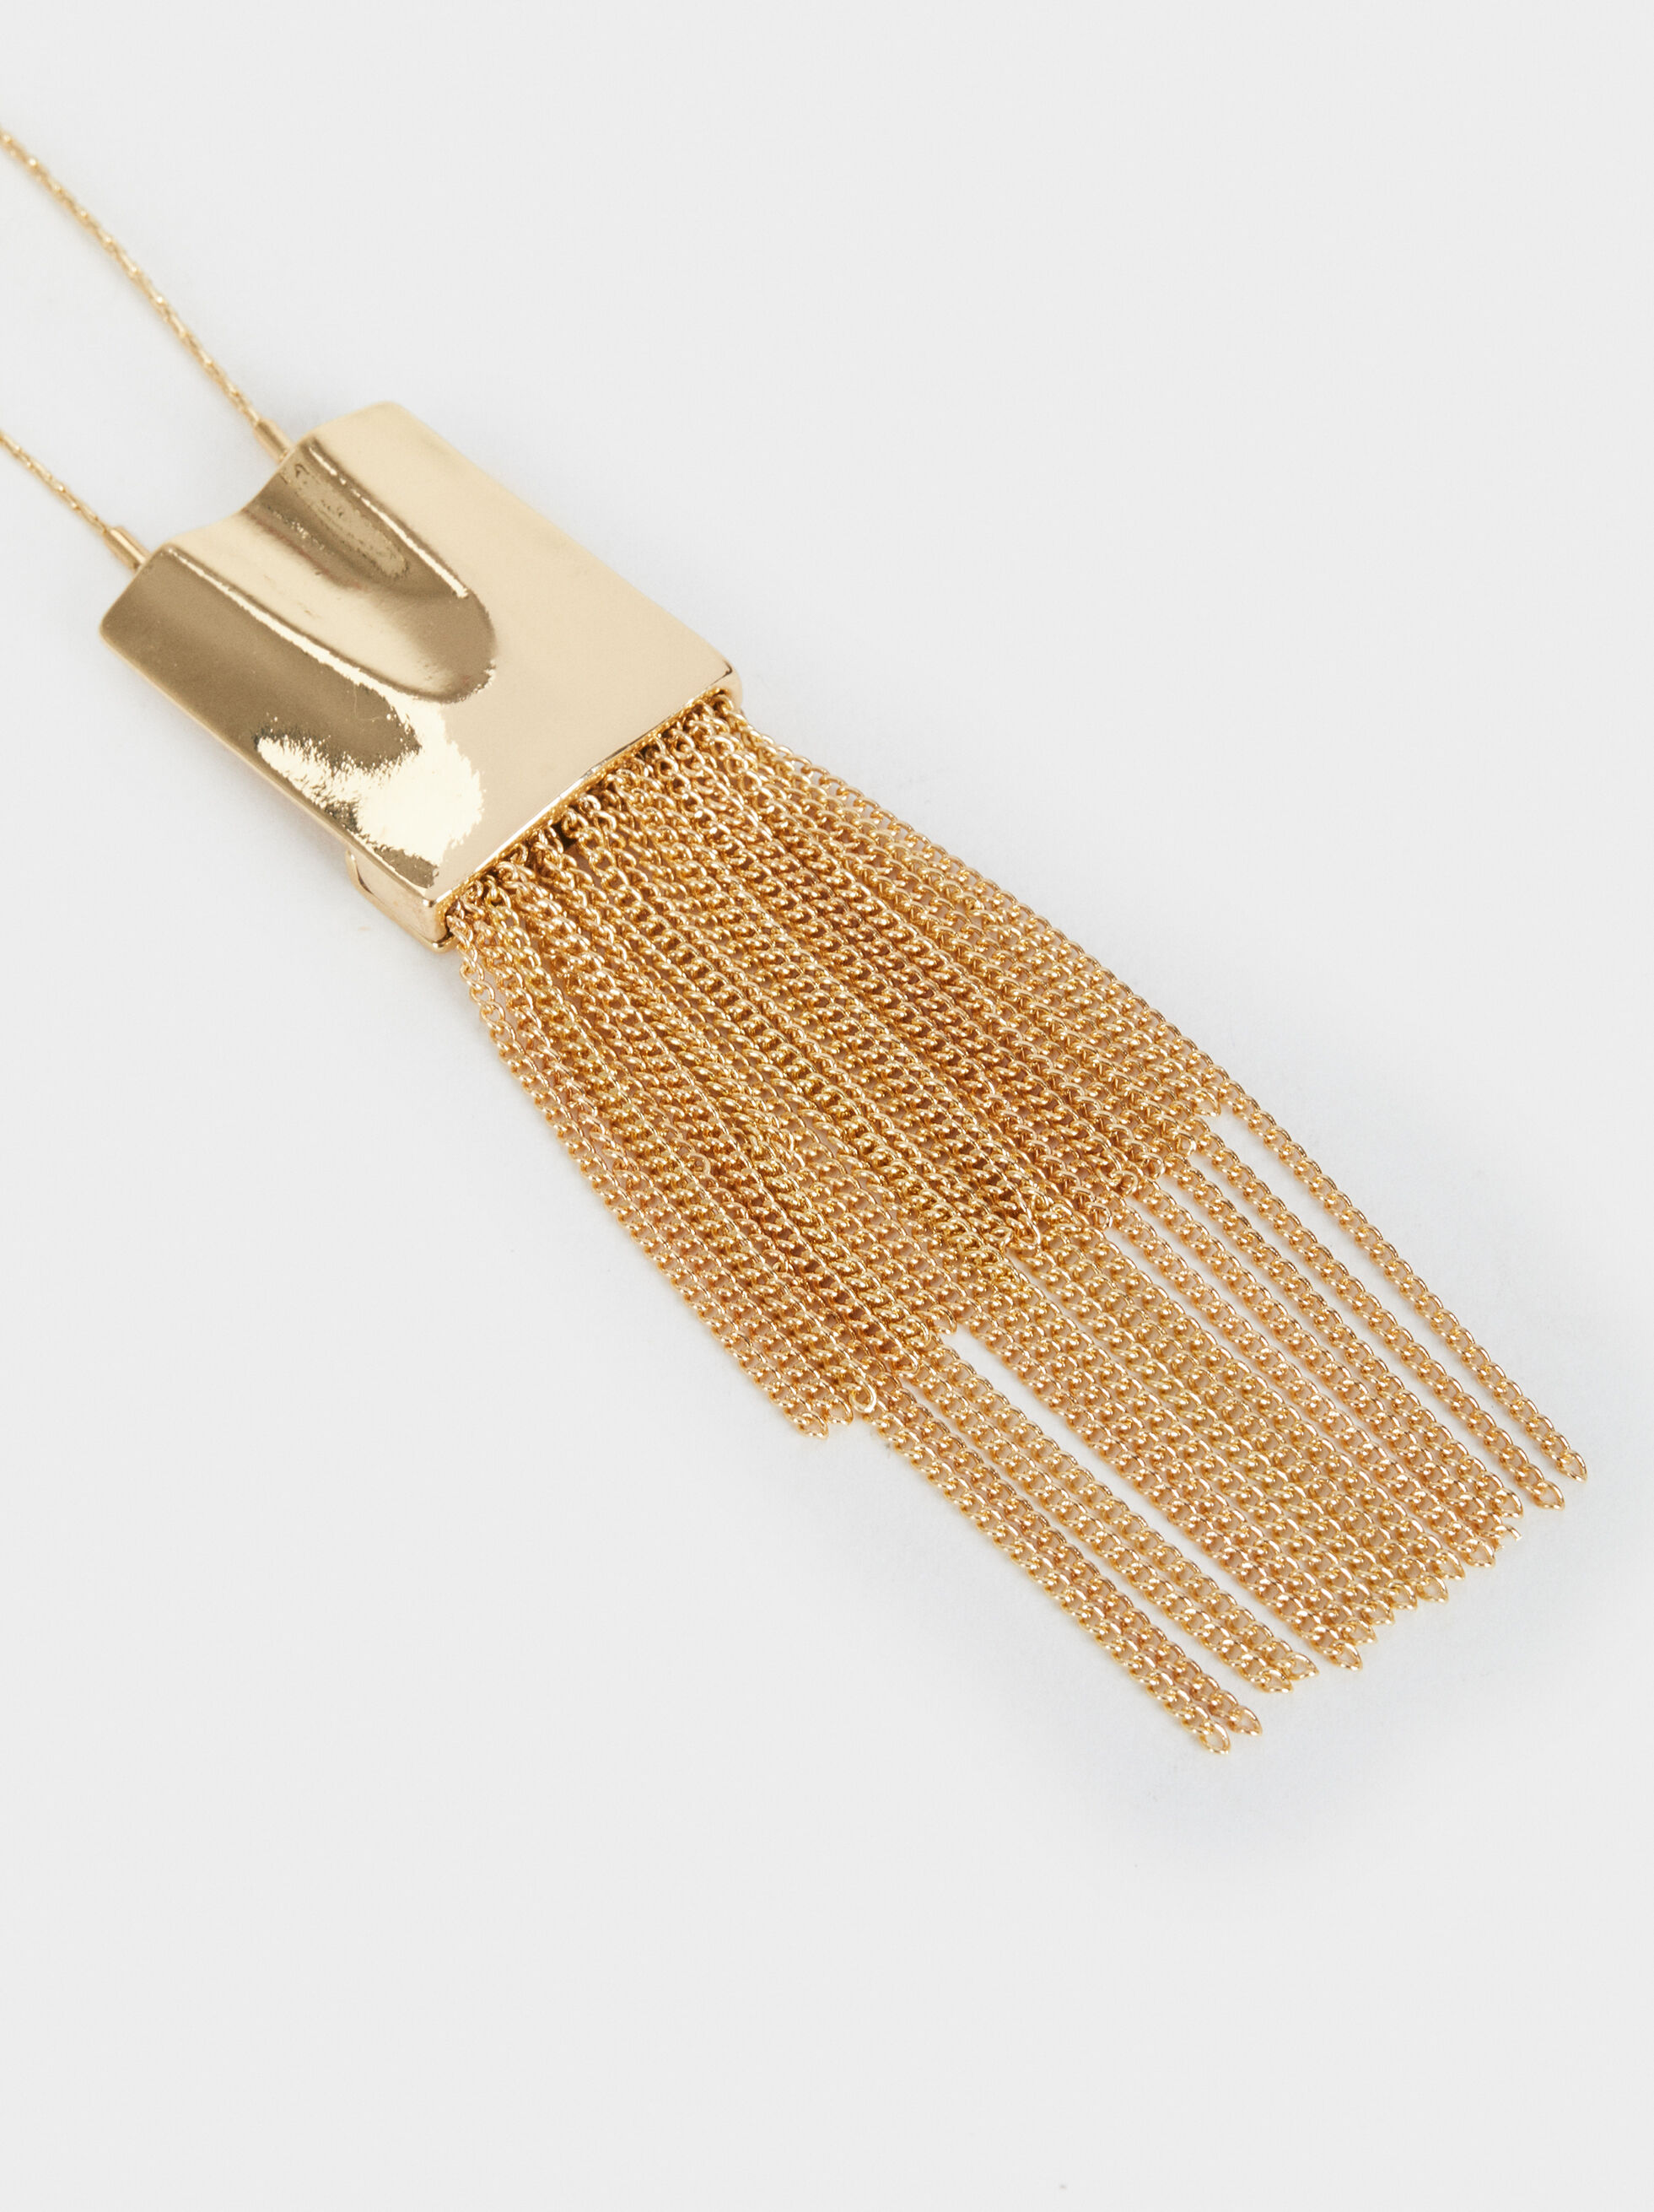 Collier Long Basique, Doré, hi-res